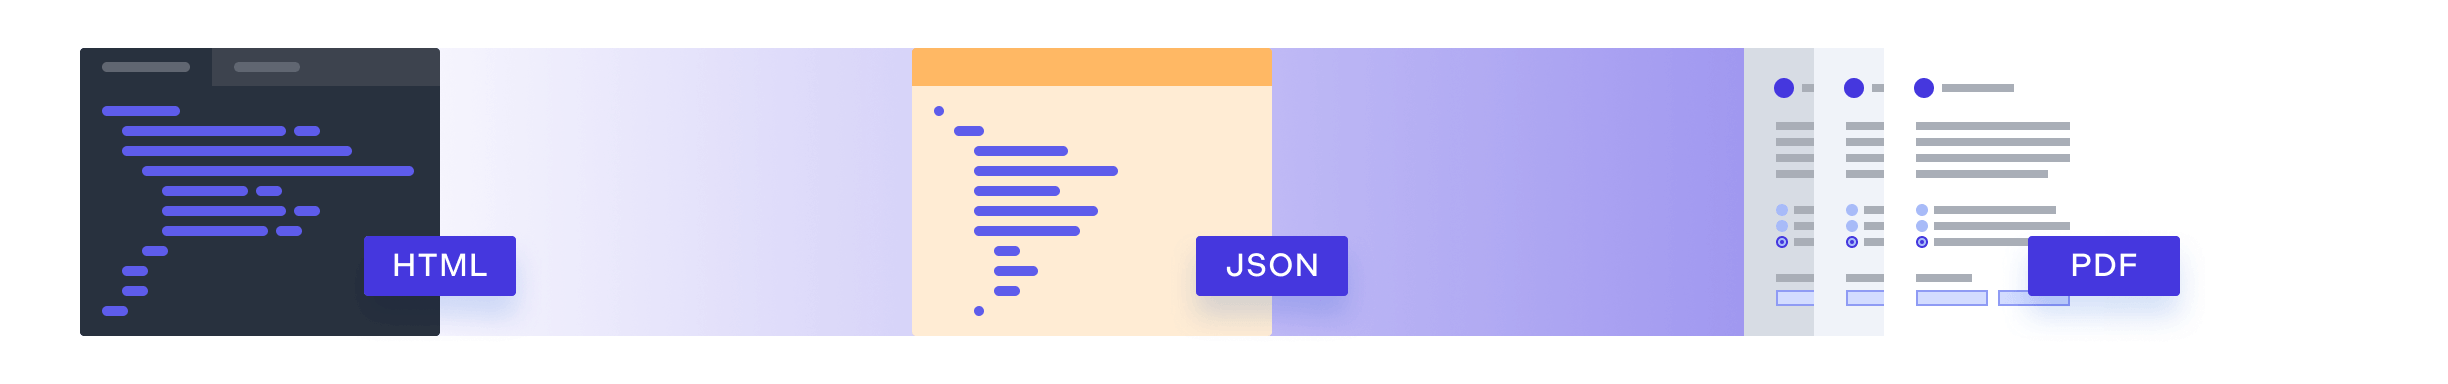 HTML, JSON, and PDF files